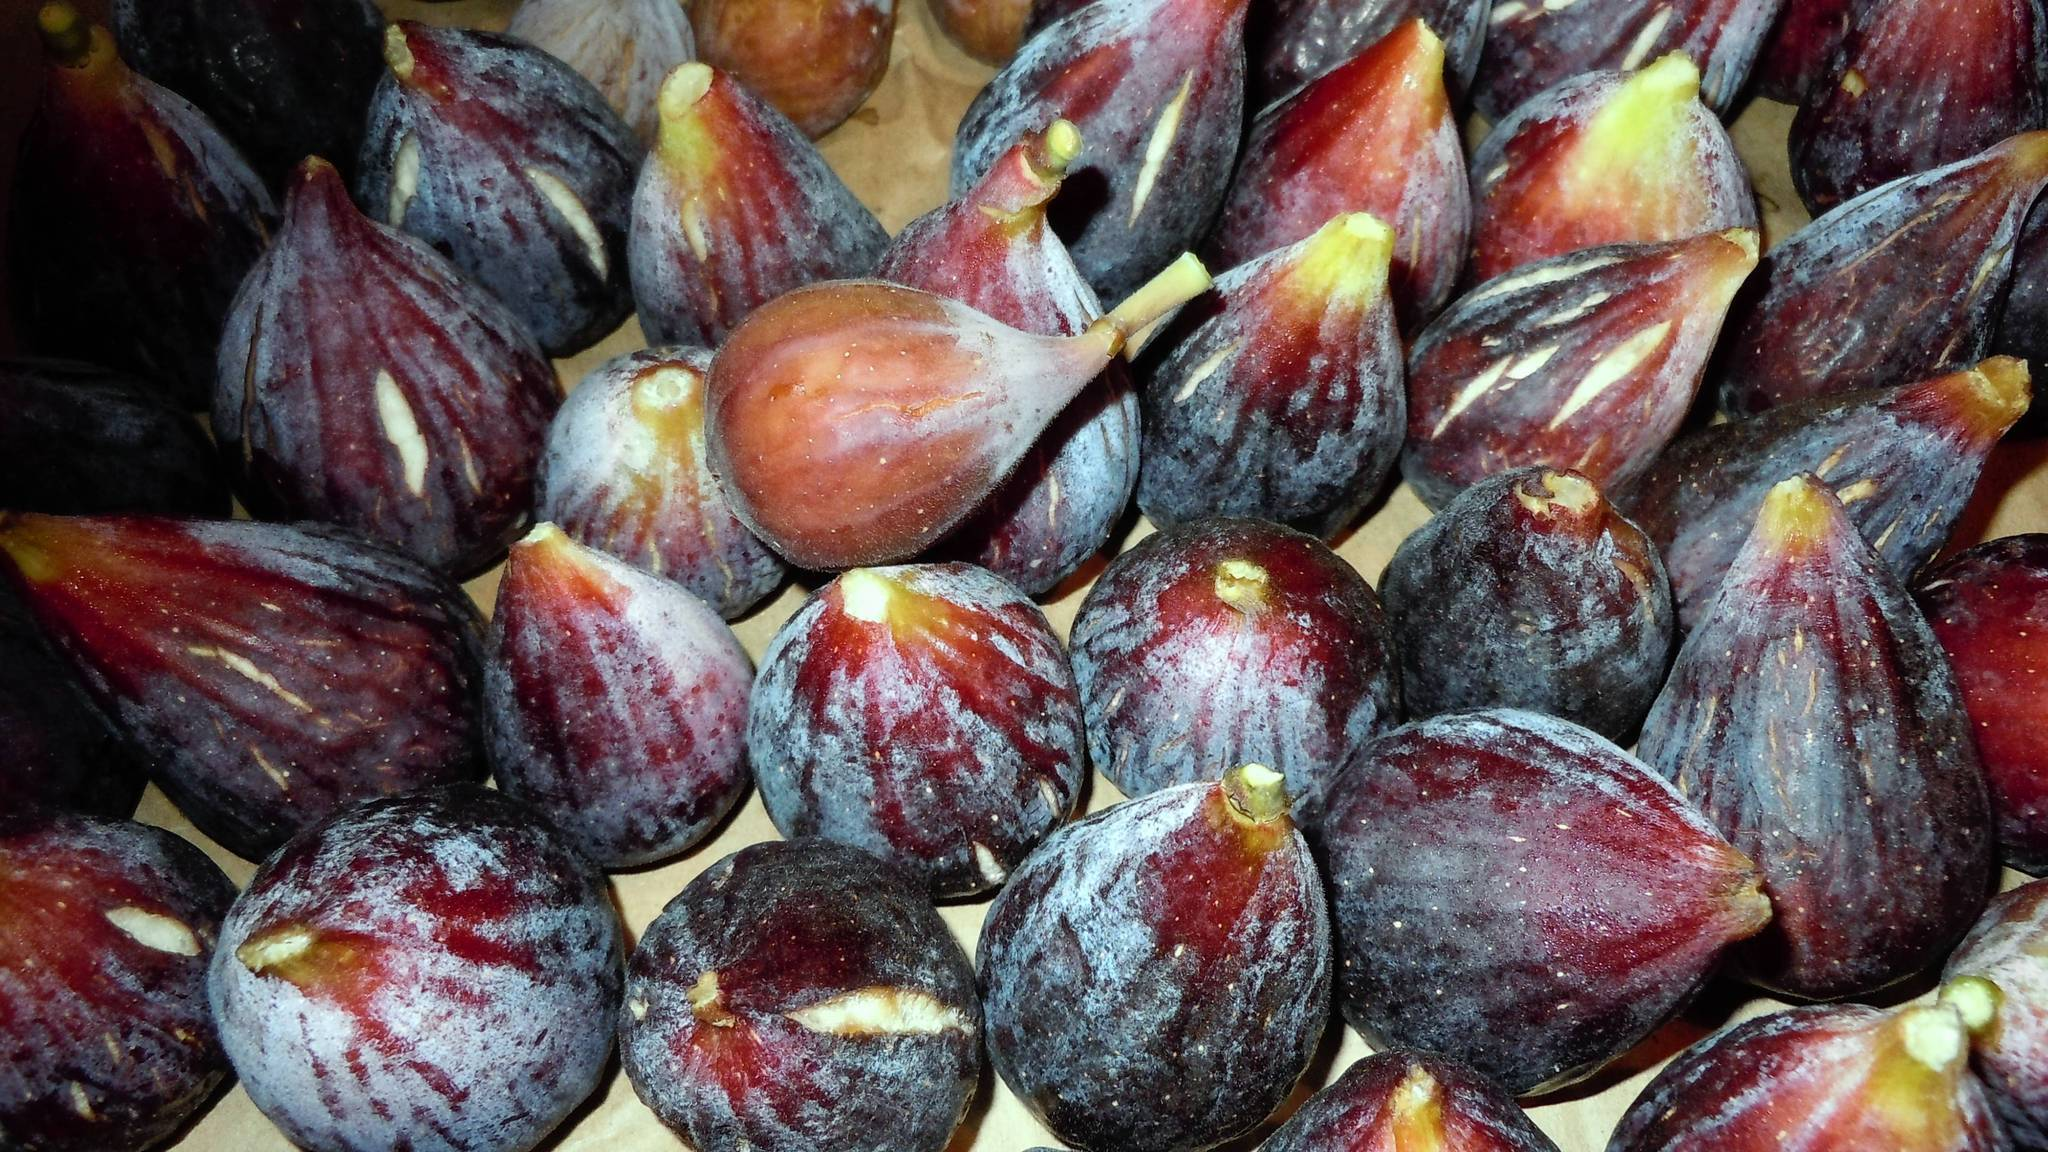 A fresh fig is a soft fruit about the size of a small plum that, depending on variety, is either round or shaped like a teardrop.